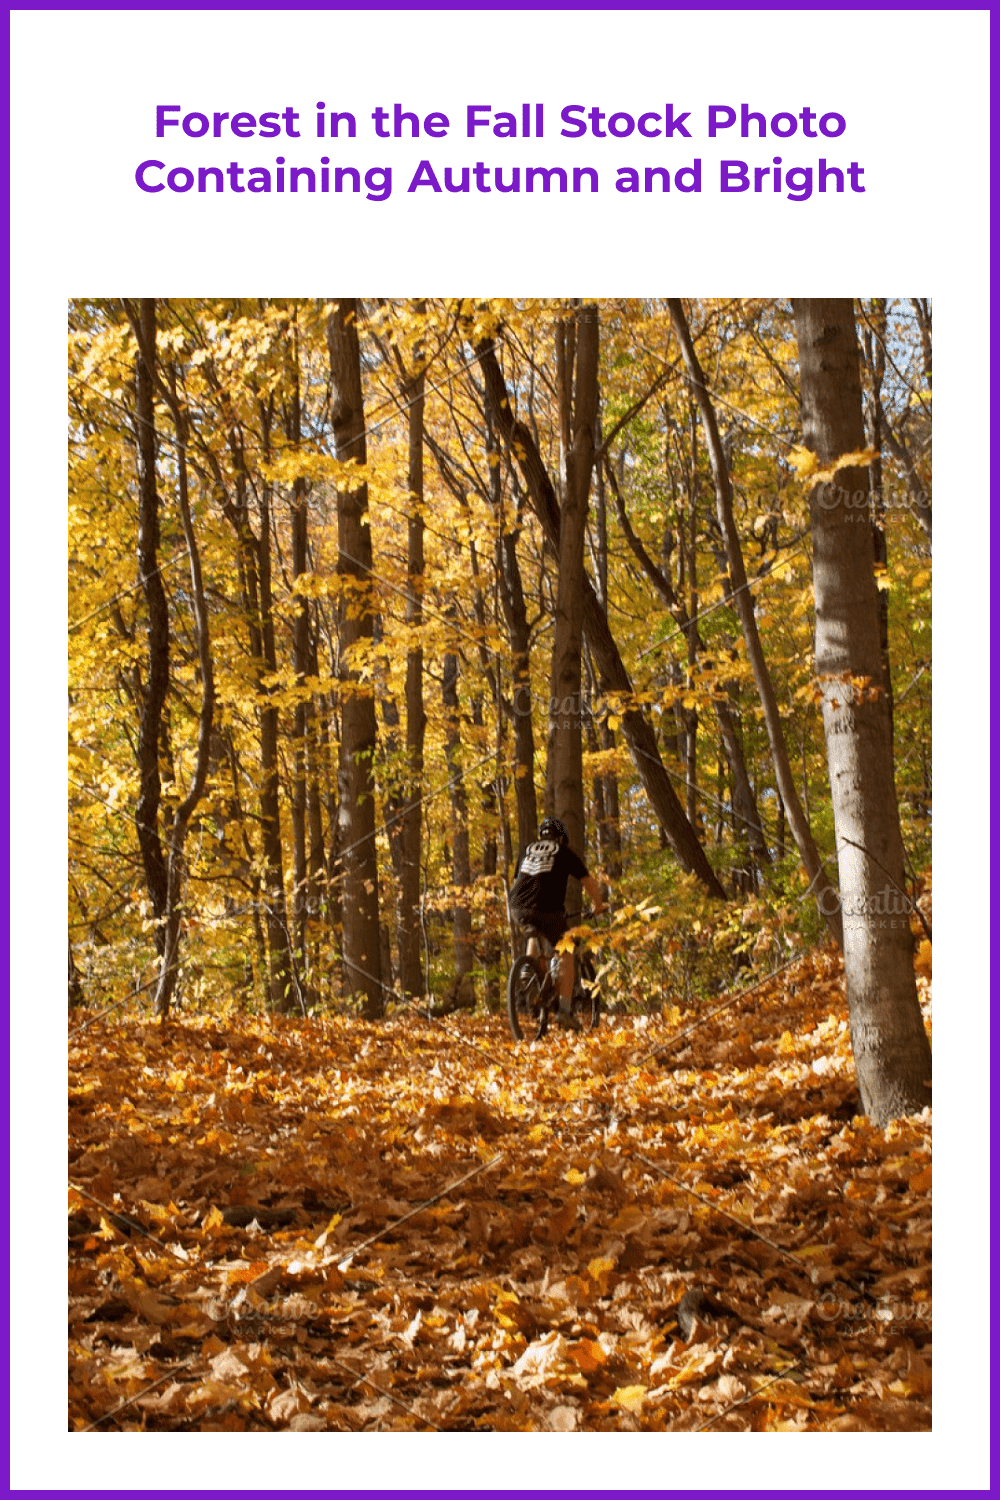 Forest in the fall stock photo containing autumn and bright.